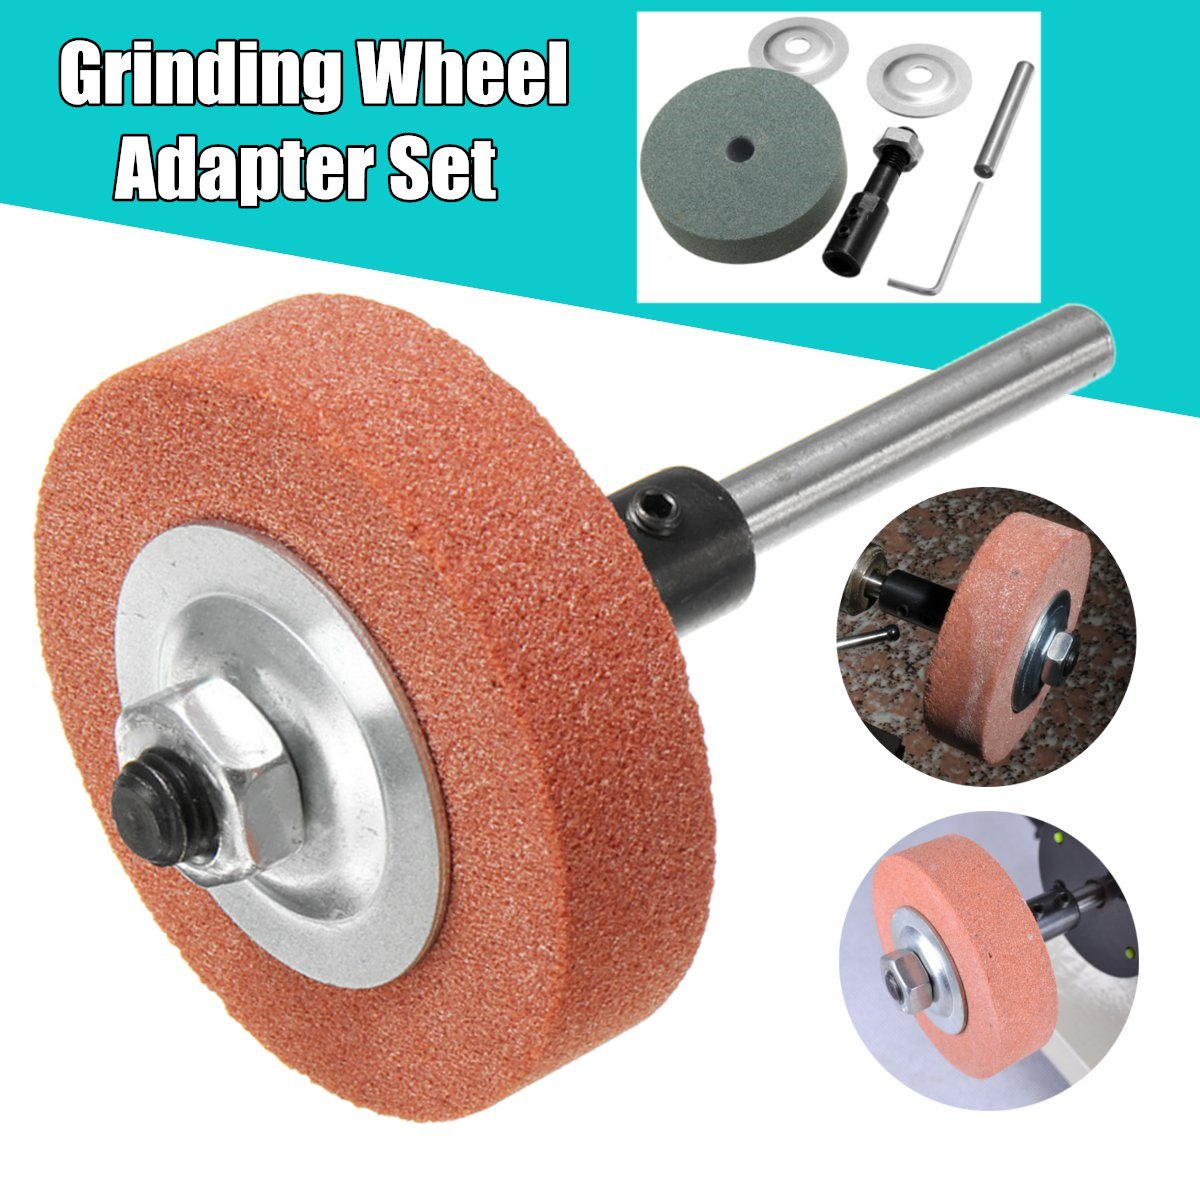 70x20x10mm 120-150 Grit Grinding Wheel Adapter Set Abrasive Tools Electric Drill Change Into Grinding Machine Wheel Plus